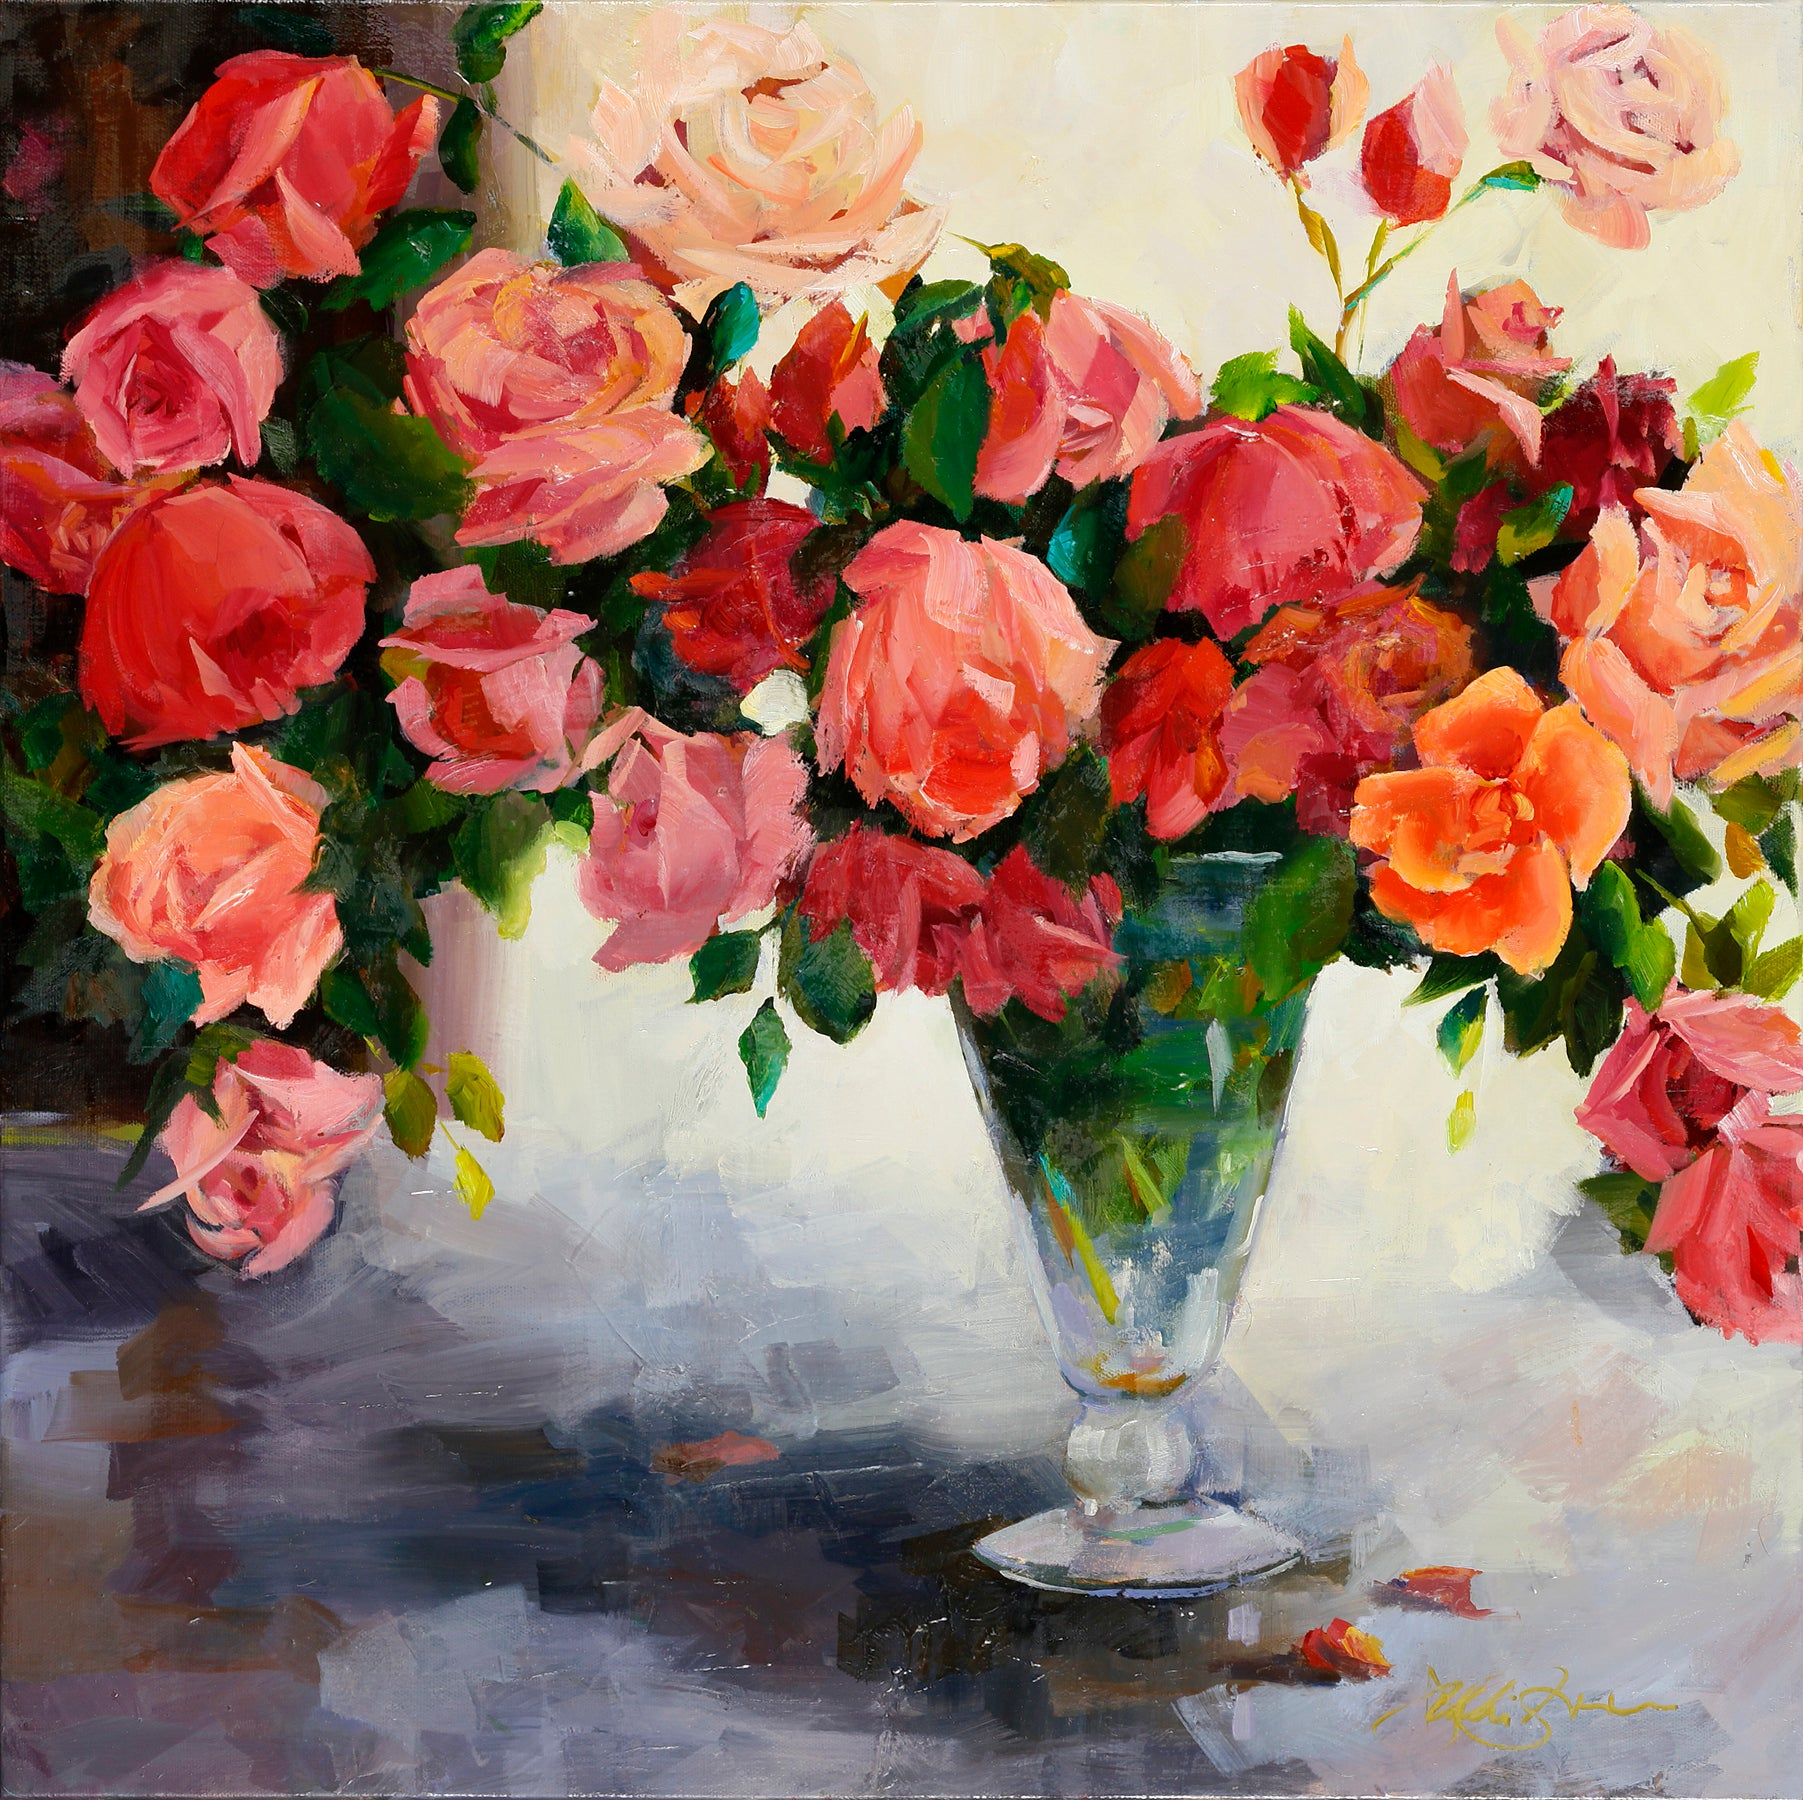 """A Profusion of Roses"", 24 x 24 x 2 inches"